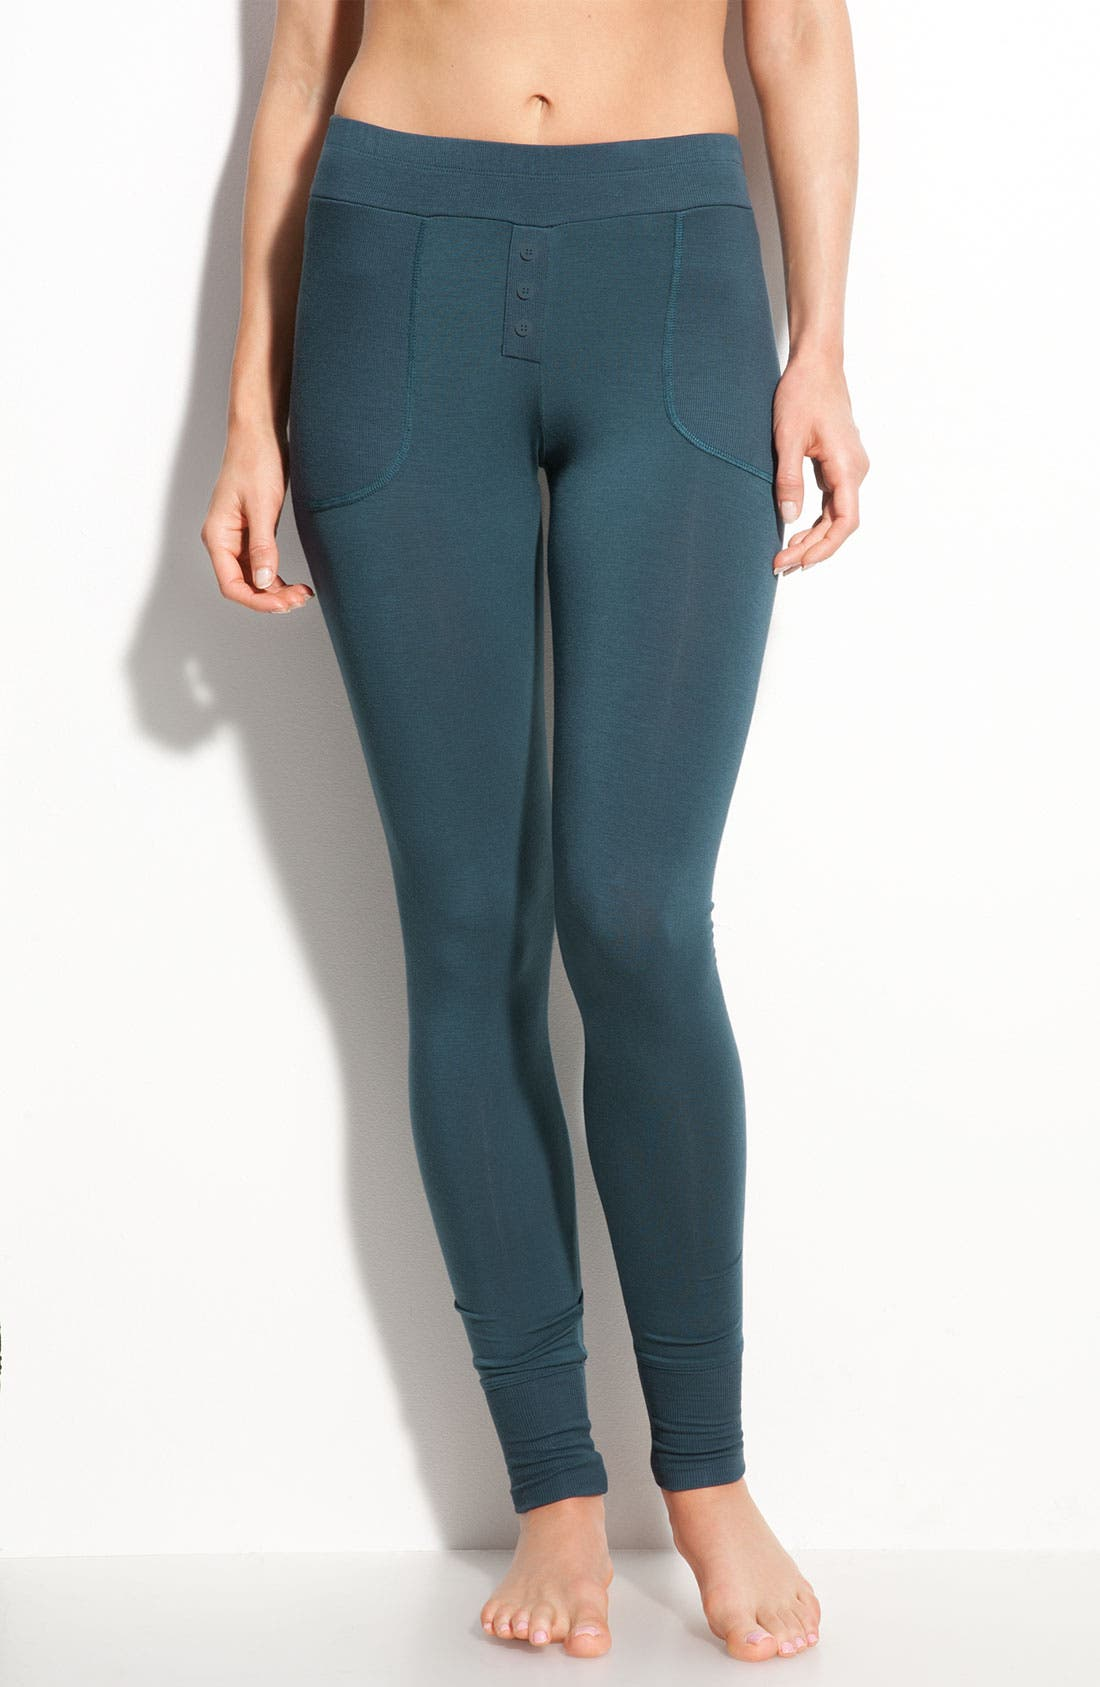 Alternate Image 1 Selected - DKNY 'Sunny Escape' Leggings